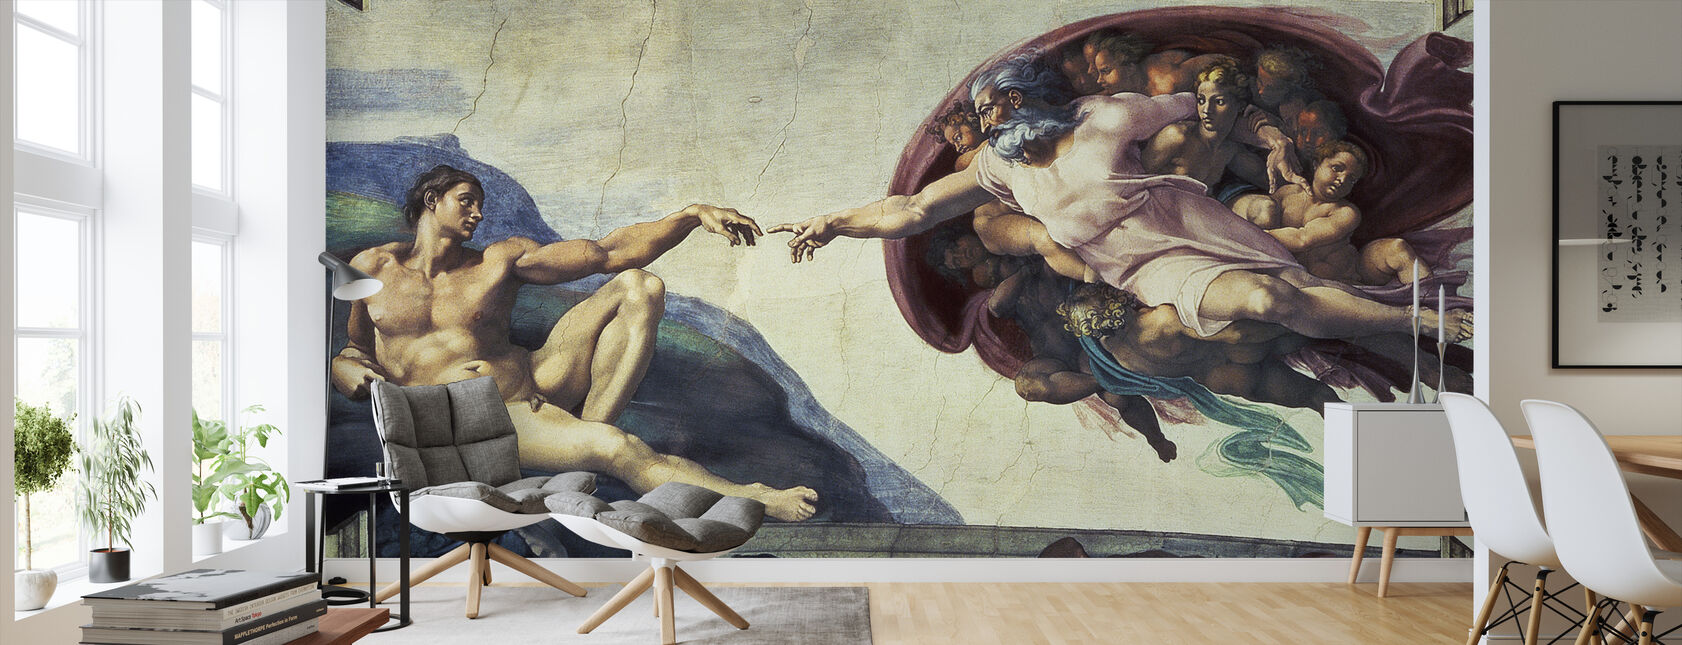 Creation of Adam - Michelangelo Buonarroti - Wallpaper - Living Room